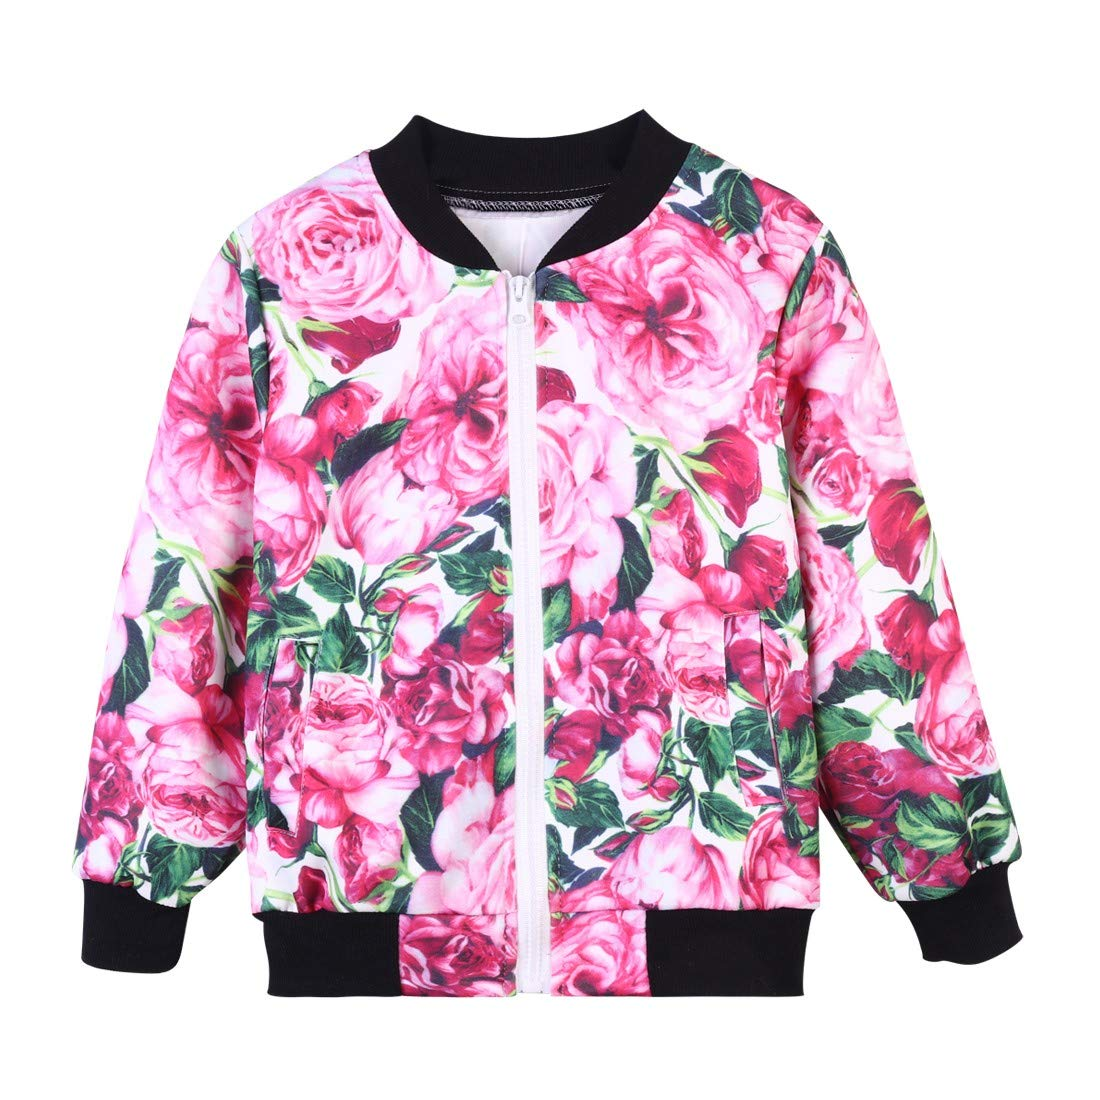 Londony ♪❤ Clearance Sales,Clothing Sets for Little Girls Baby Kids Floral Print Pockets Zip Jacket and Pant Set by Londony